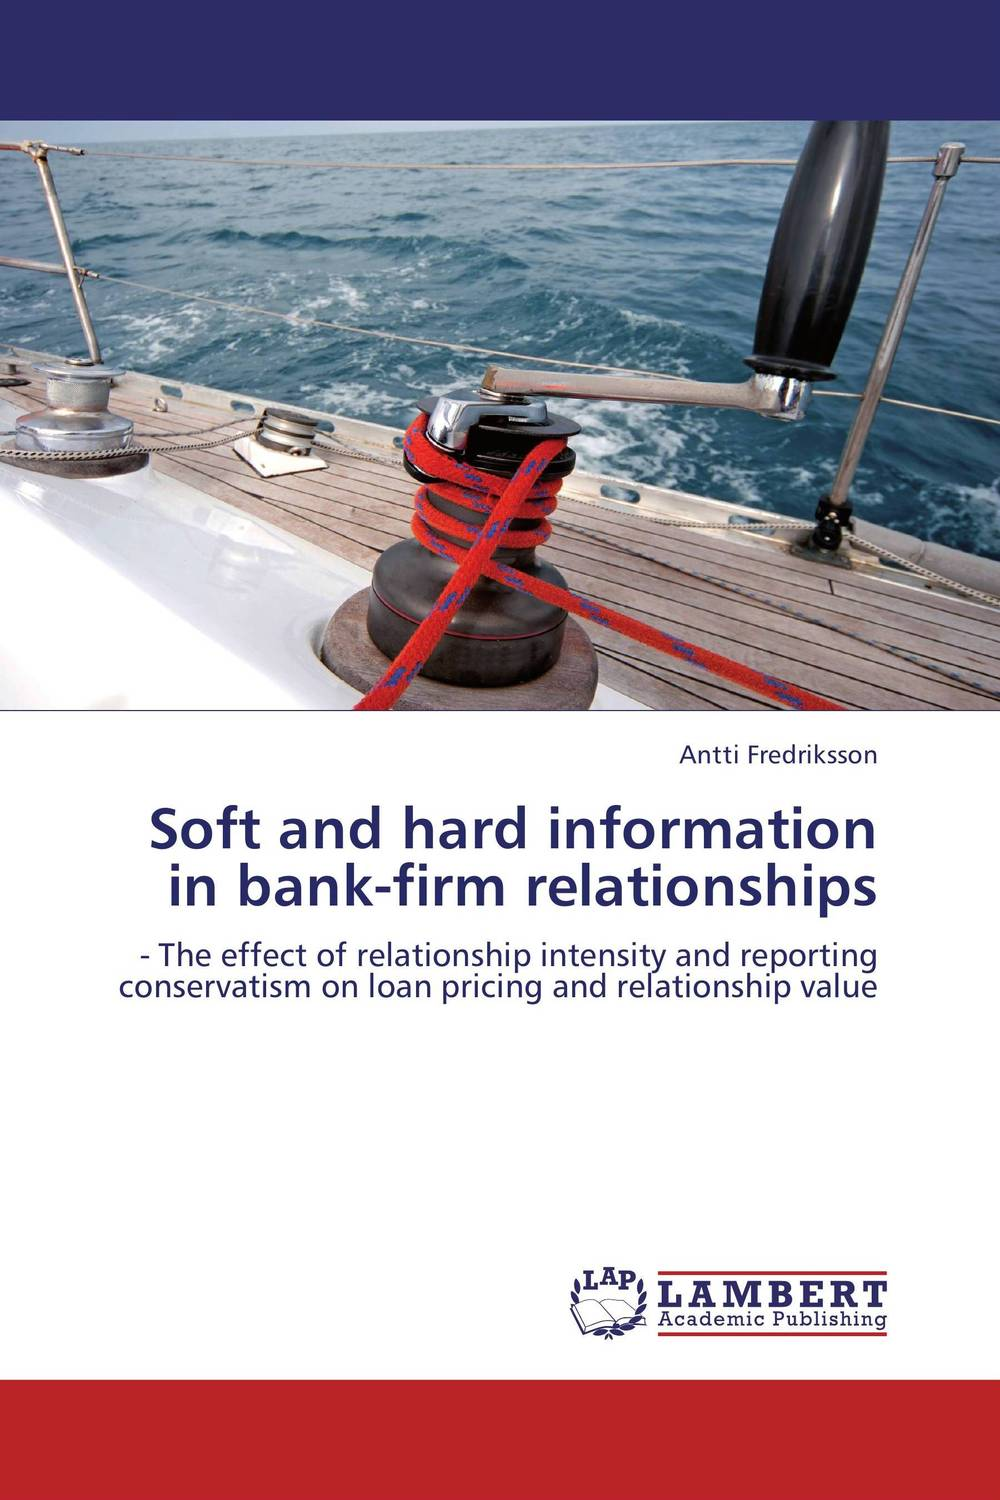 Soft and hard information in bank-firm relationships corporate governance and firm value